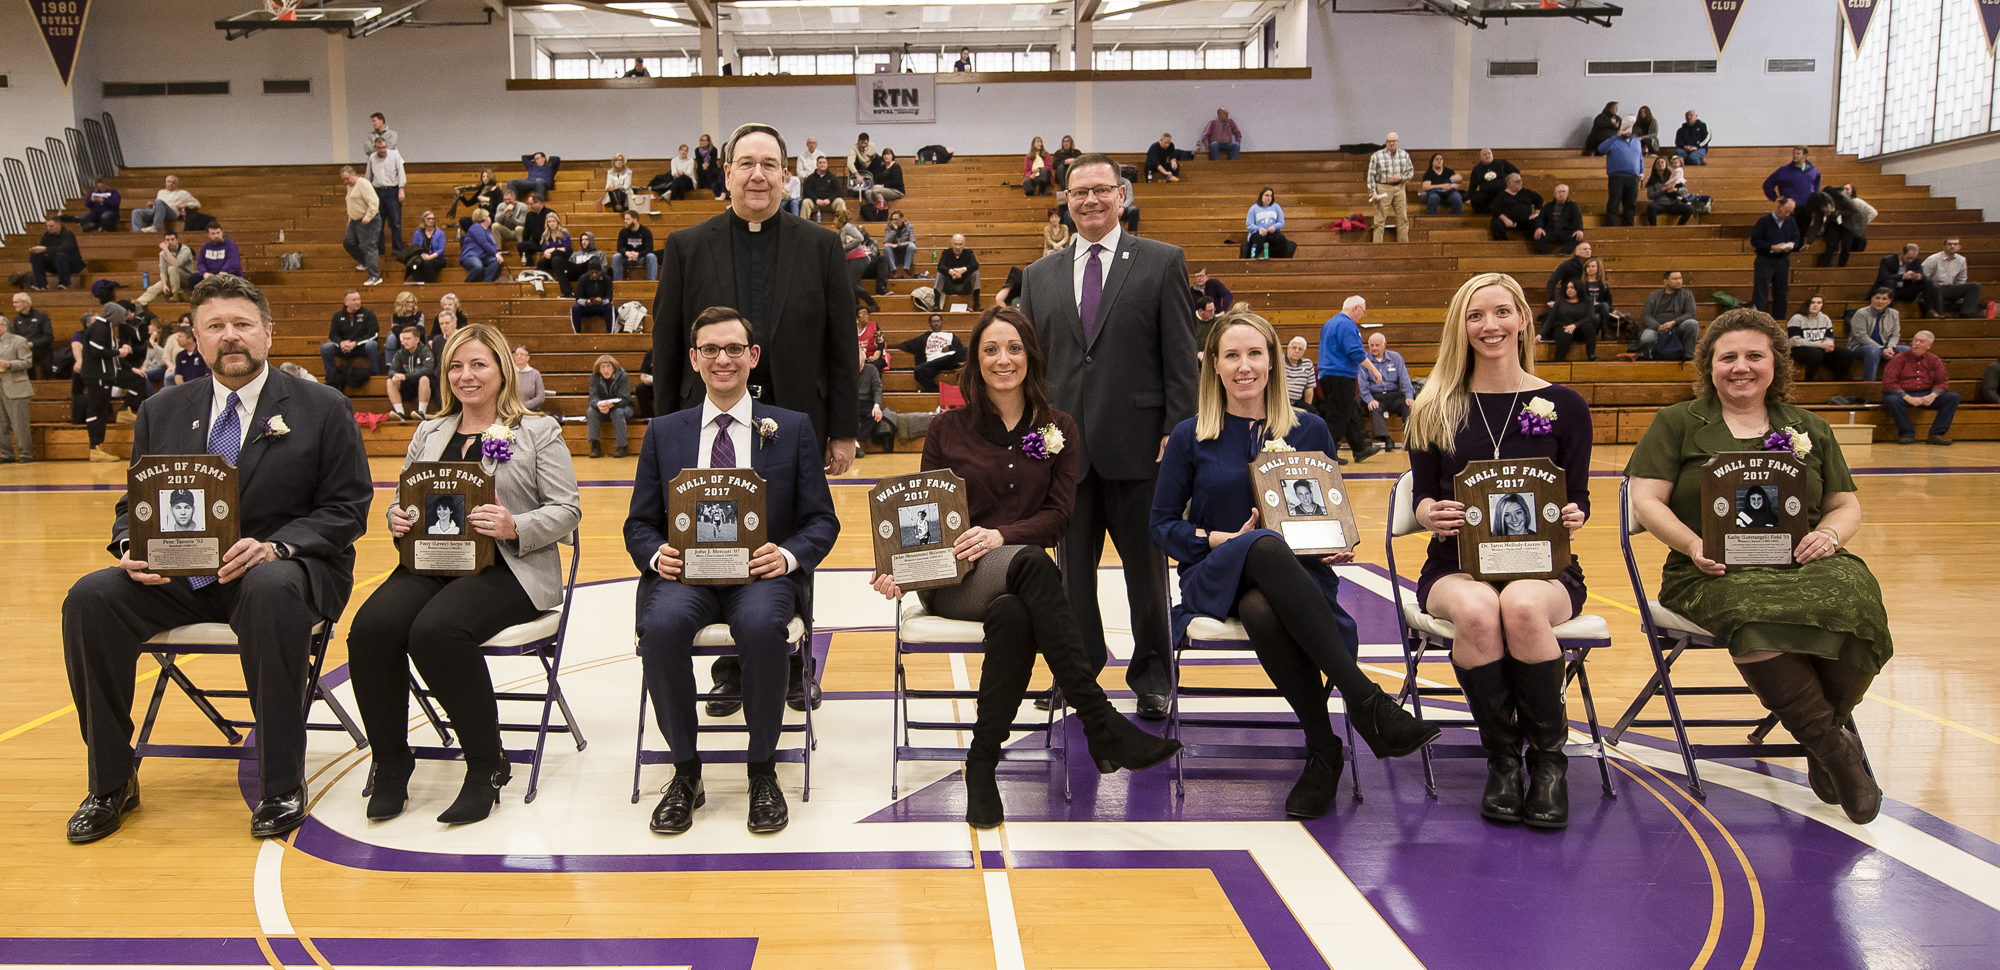 The Wall of Fame Class of 2017, seated from left: Pete Tarutis '92, Patty (Levey) Serpe '88, John Mercuri '07, Jackie (Messantonio) McGovern '07, Allison (Matt) Martin '07, Dr. Taryn Mellody-Liuzzo '07 and Kathy (Loretangeli) Field '93. Standing in back are Rev. Herbert Keller, S.J., interim president of the University, and Dave Martin, director of athletics.